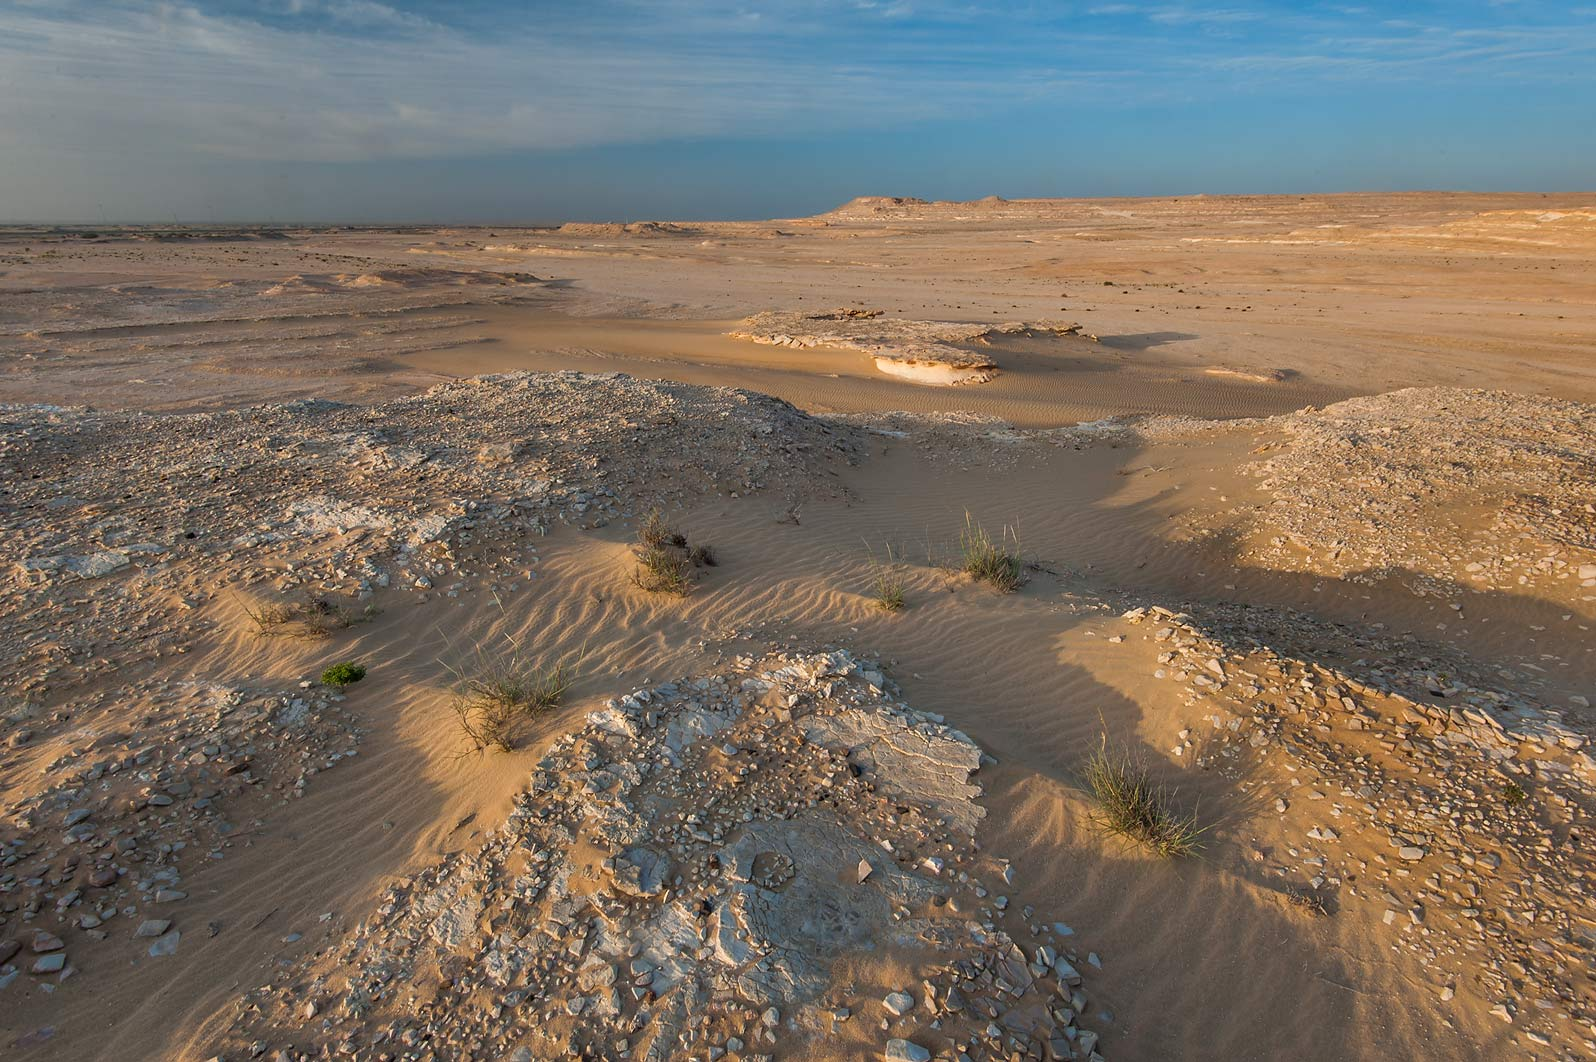 Stony plateau in area of Jebel Al-Nakhsh (Khashm an Nakhsh). South-western Qatar